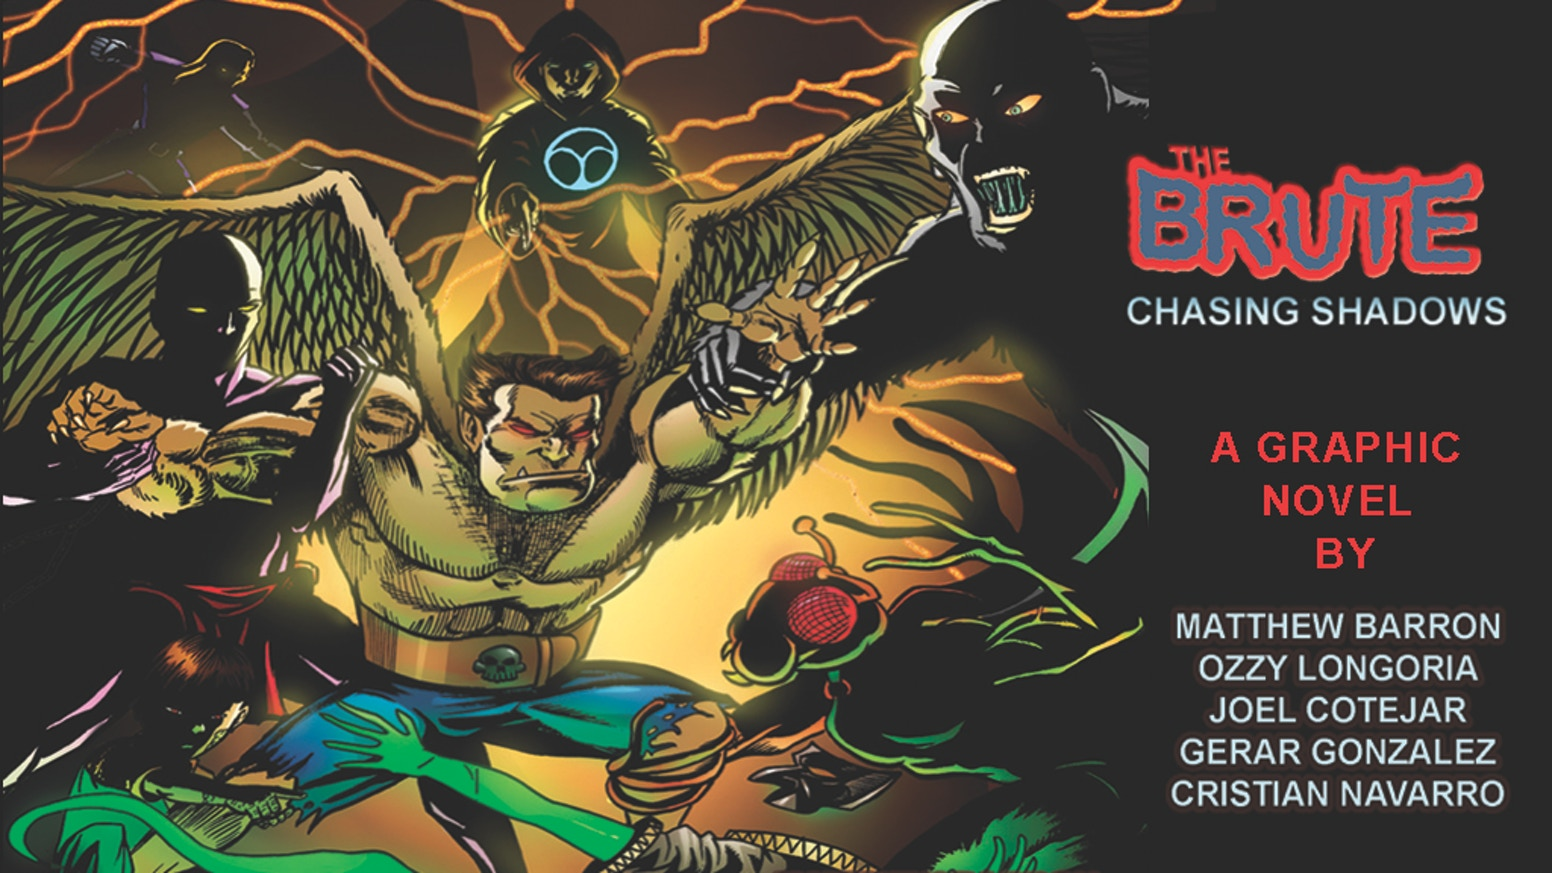 I want to have copies of my latest 168 page full color graphic novel in time for Indiana Comic Con on March 30th